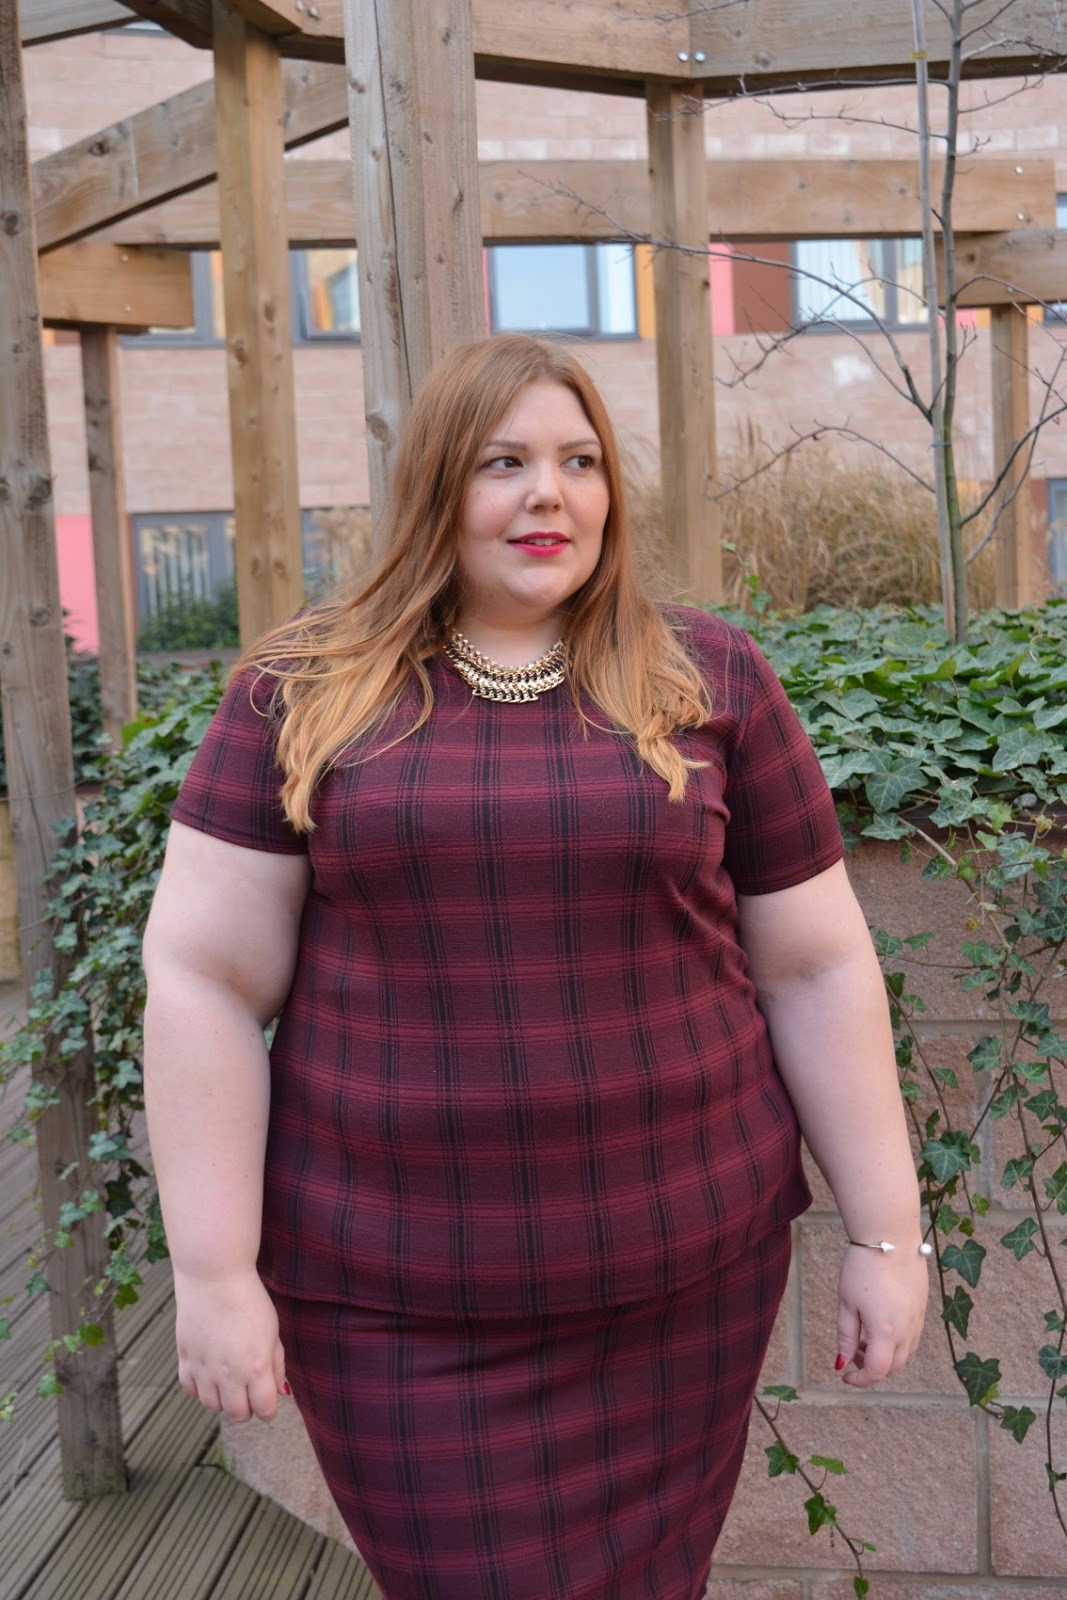 What is a bbw on dating sites